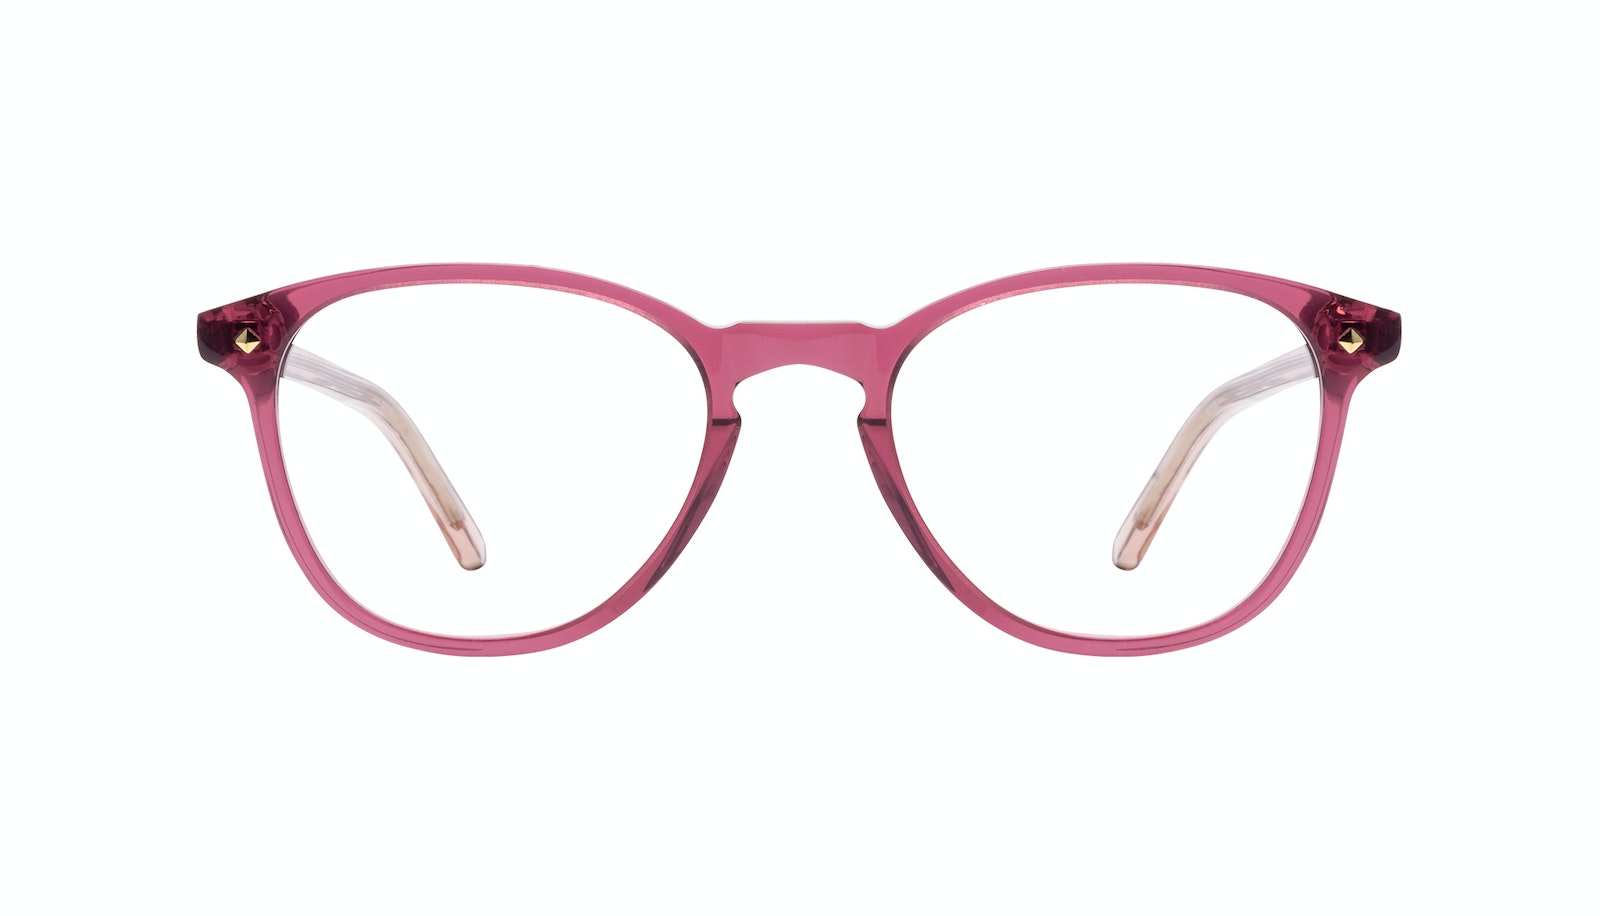 Affordable Fashion Glasses Round Eyeglasses Women Crush Berry